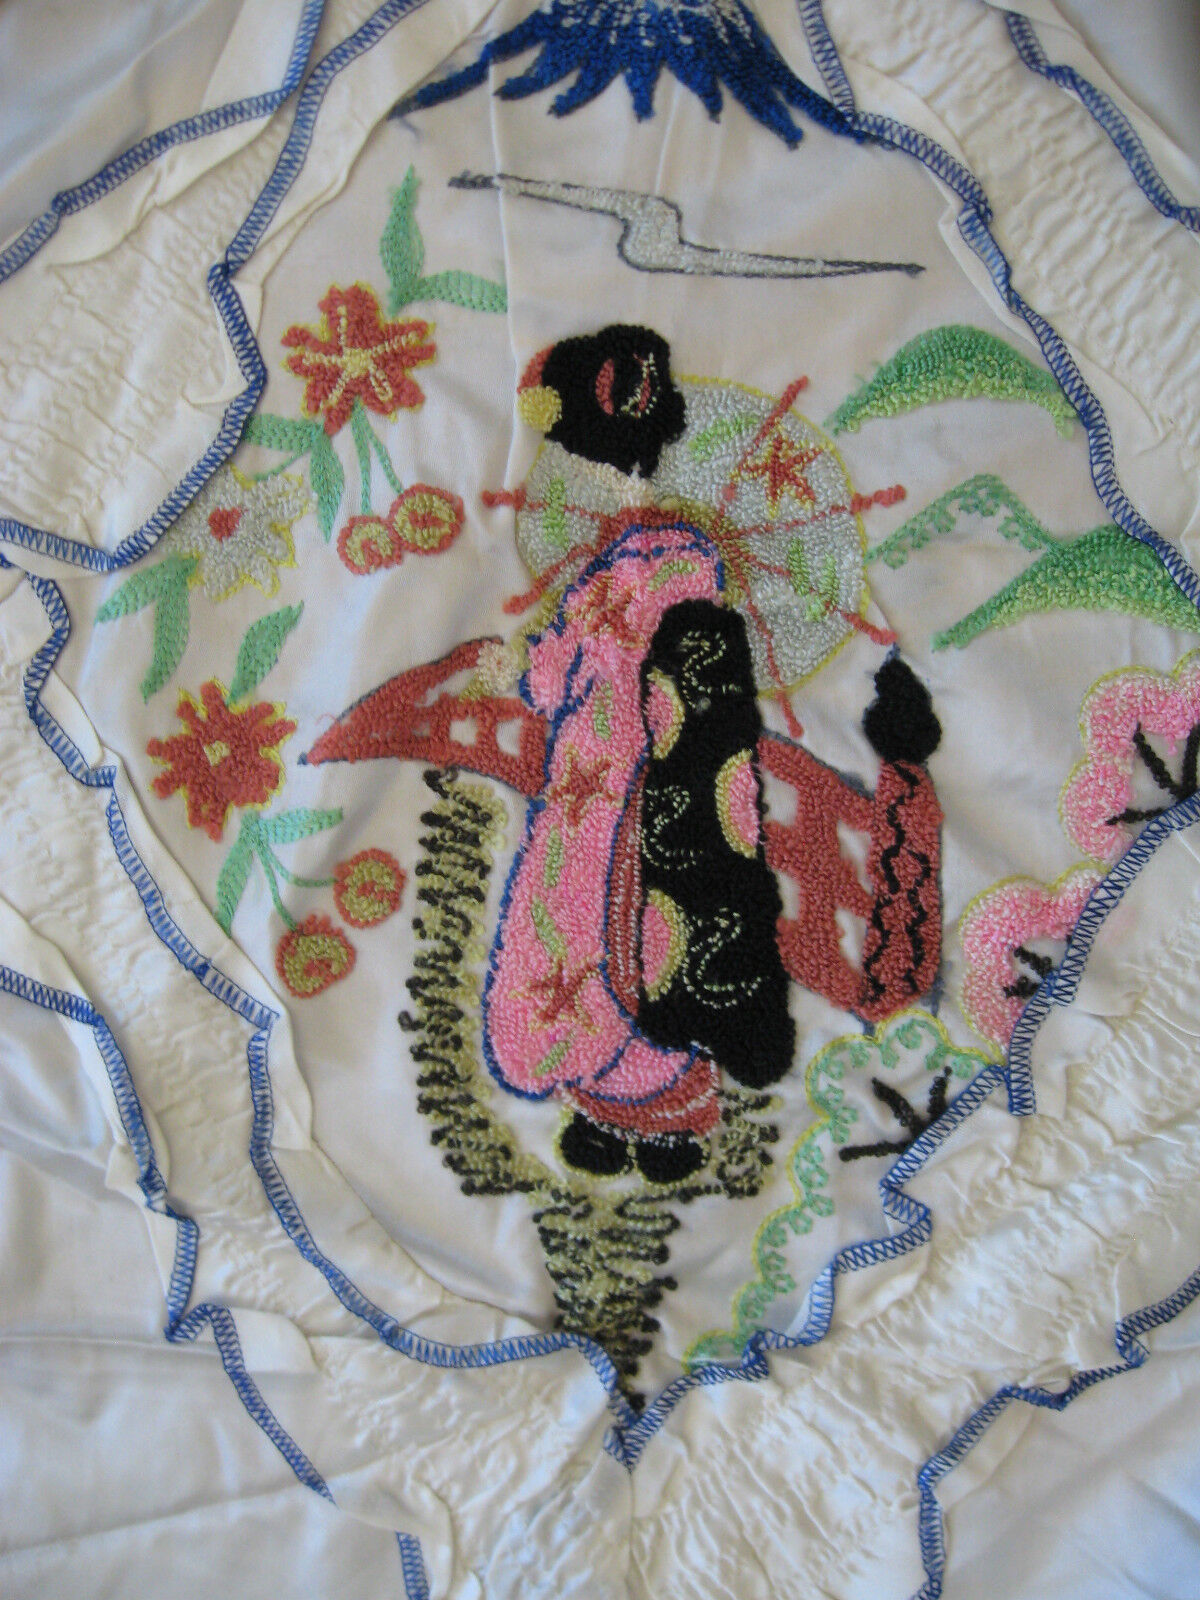 1940's, WWII Era Japanese Embroiderosso, Coverlet, Pillow Shams Geisha Image